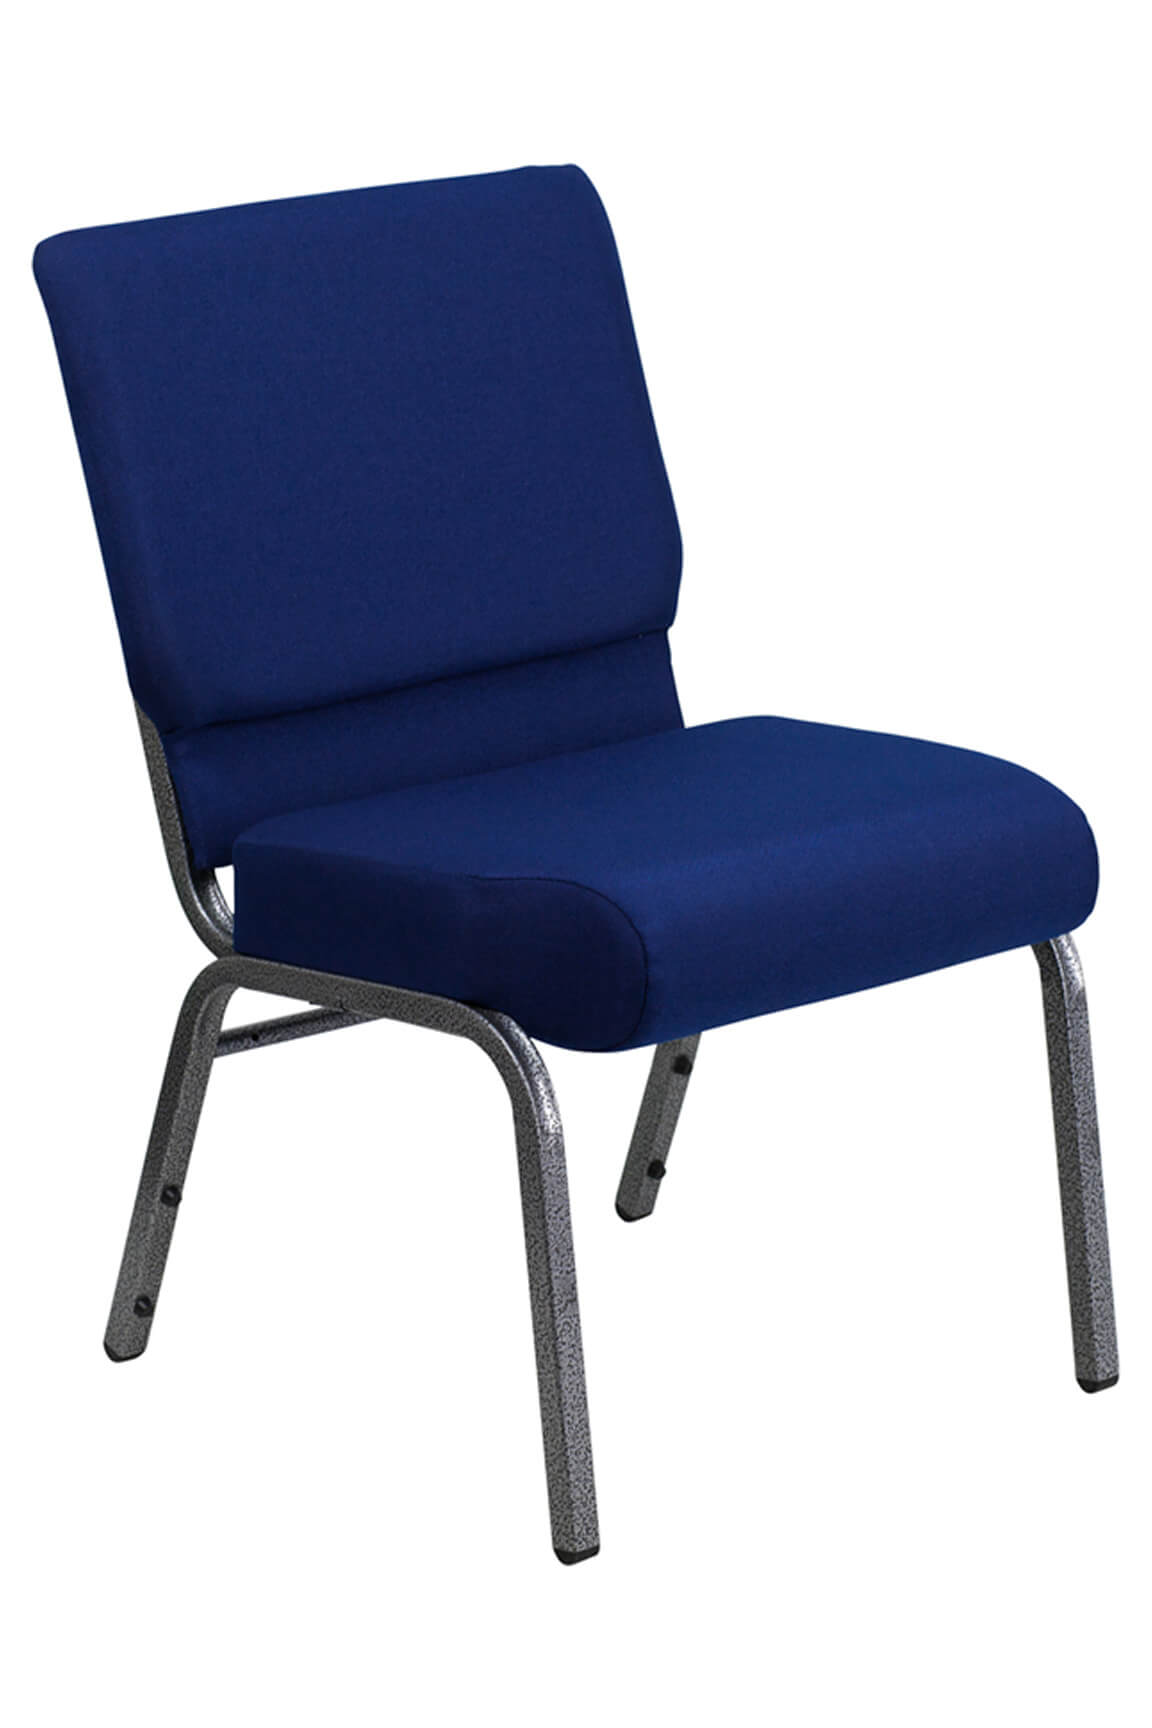 Blue Church Chair